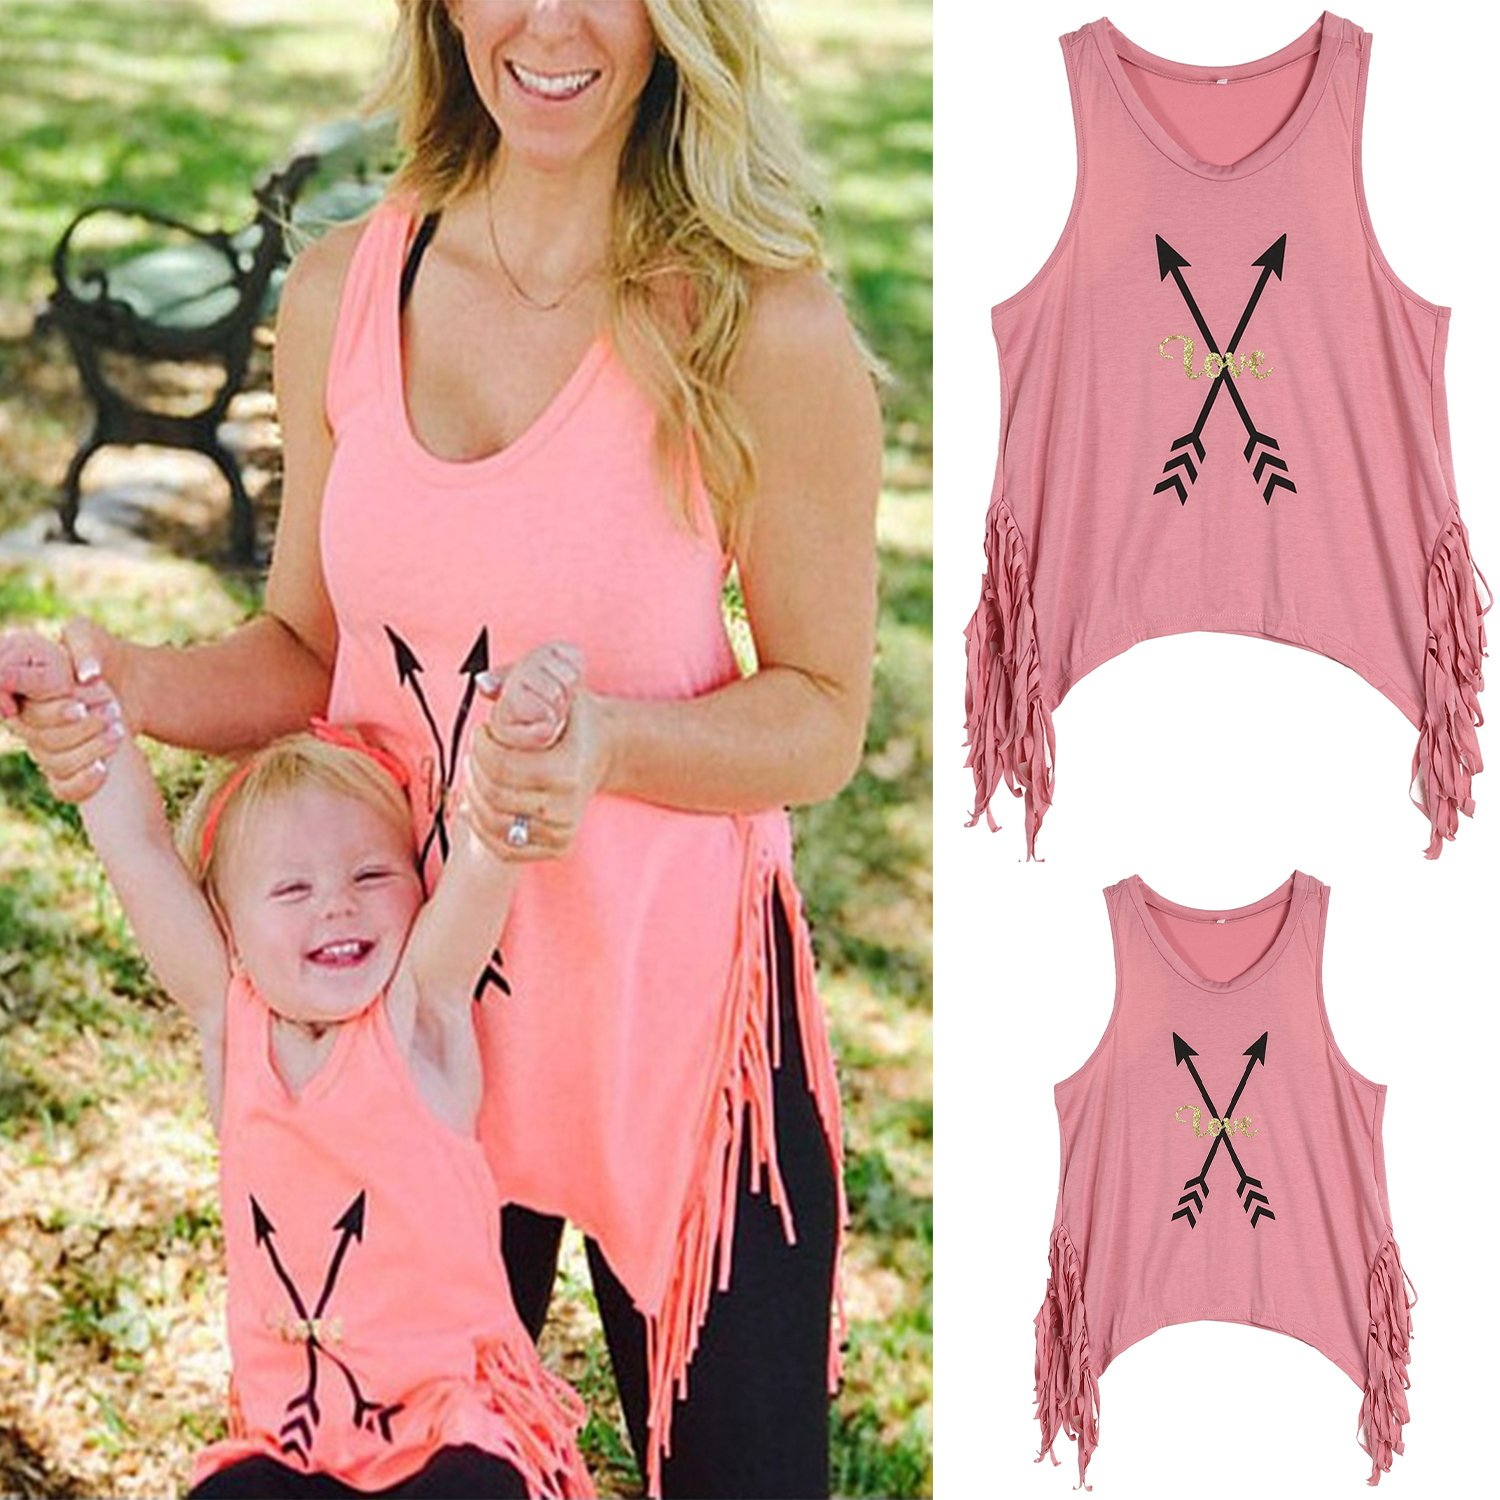 WIFORNT Mommy and Me Matching Letter Print Tank Top Sleeveless Tassel T-Shirt Vest Family Shirts Outfits